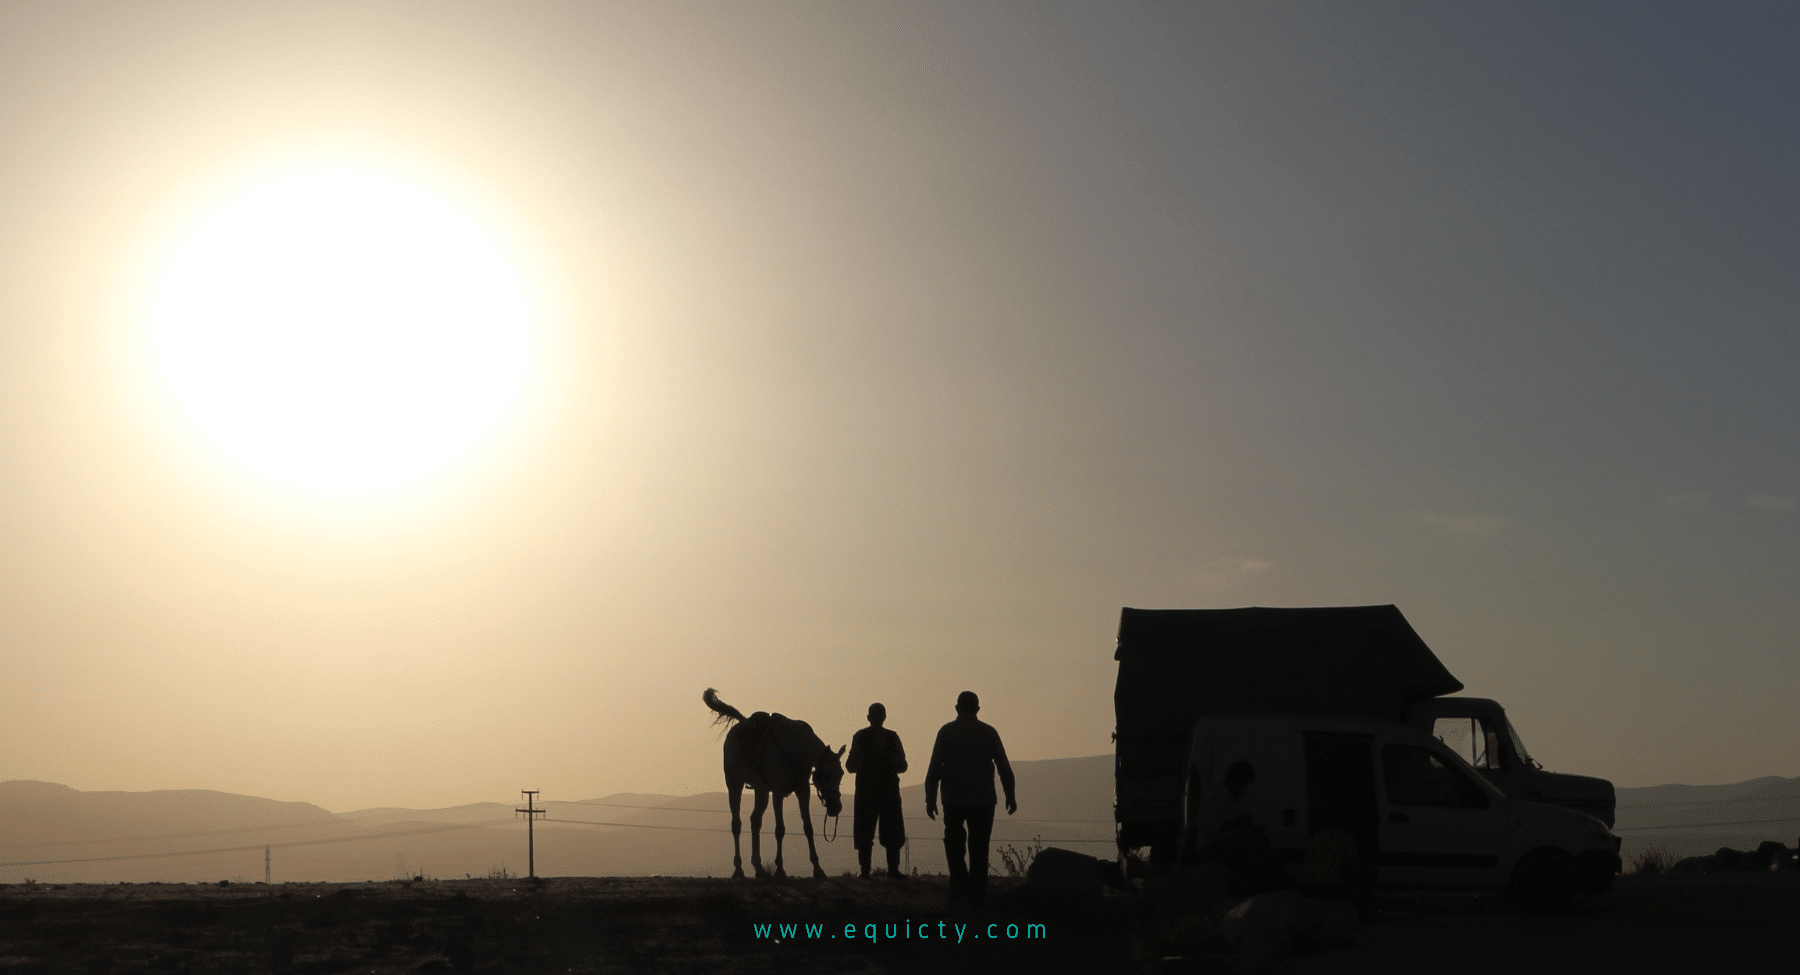 Horse owner building a relationship with the horse trainer.